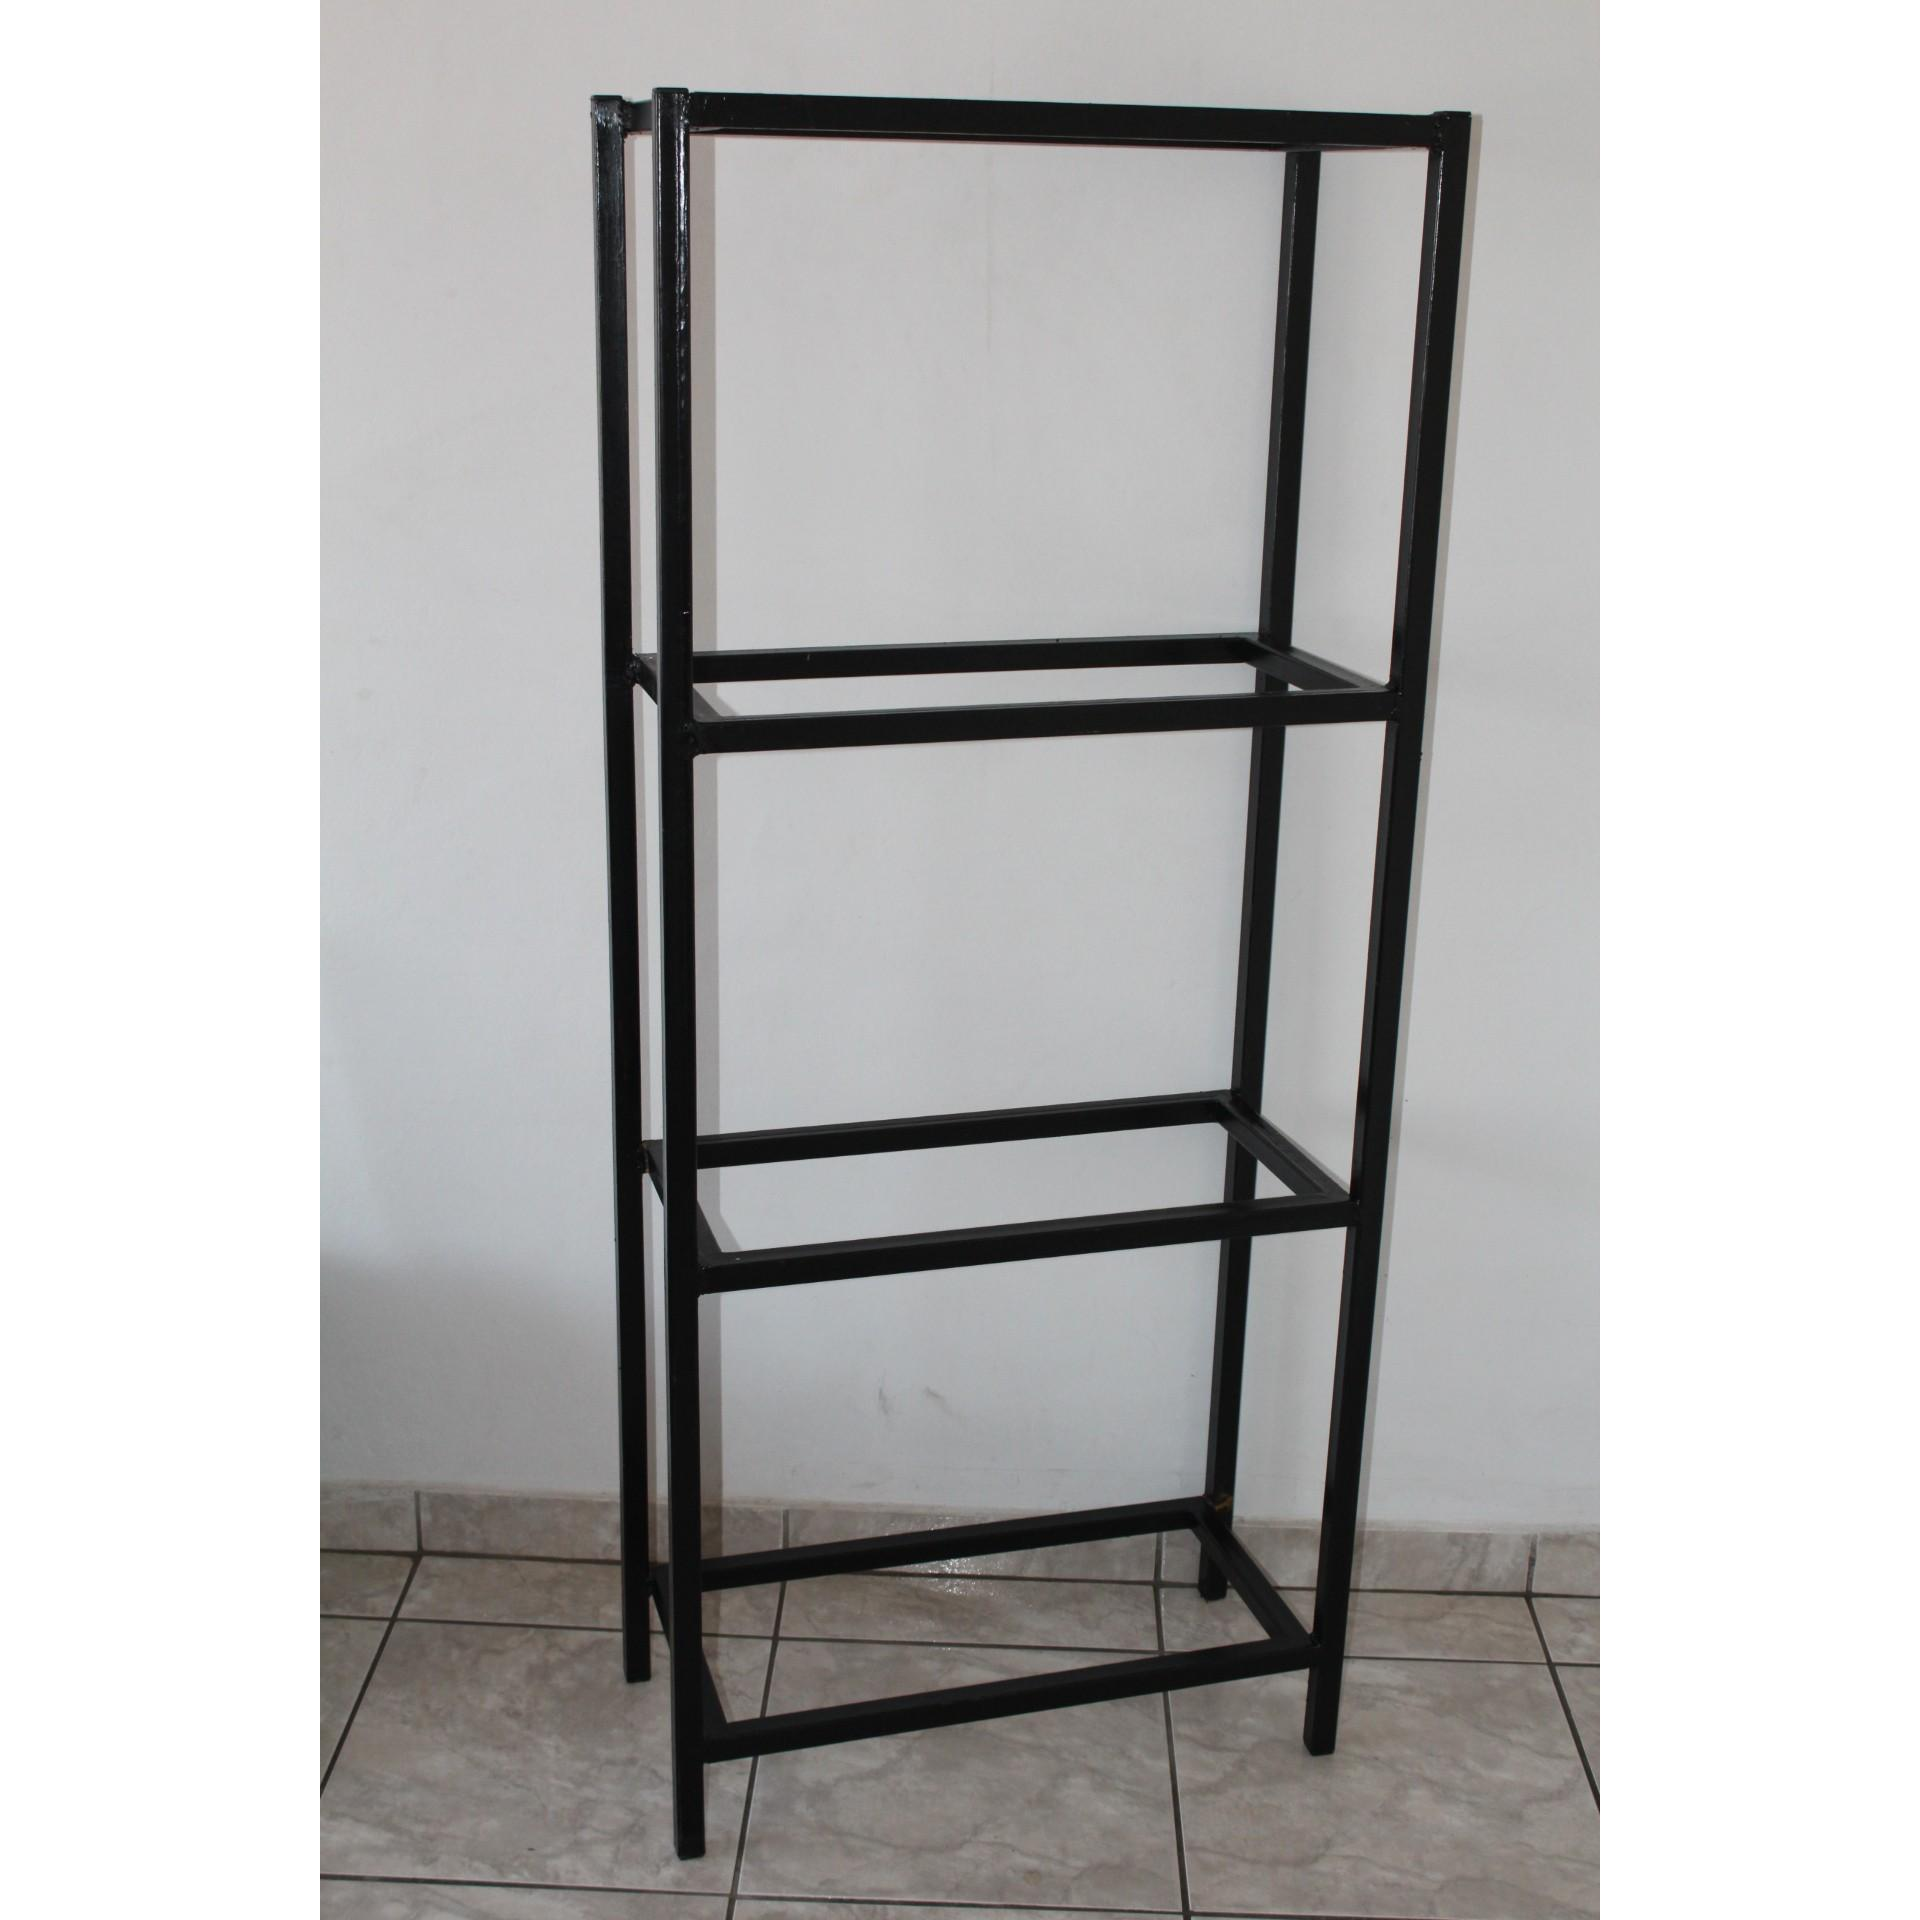 3 tier stand. Fits 3x 2ft (60cm) Tanks